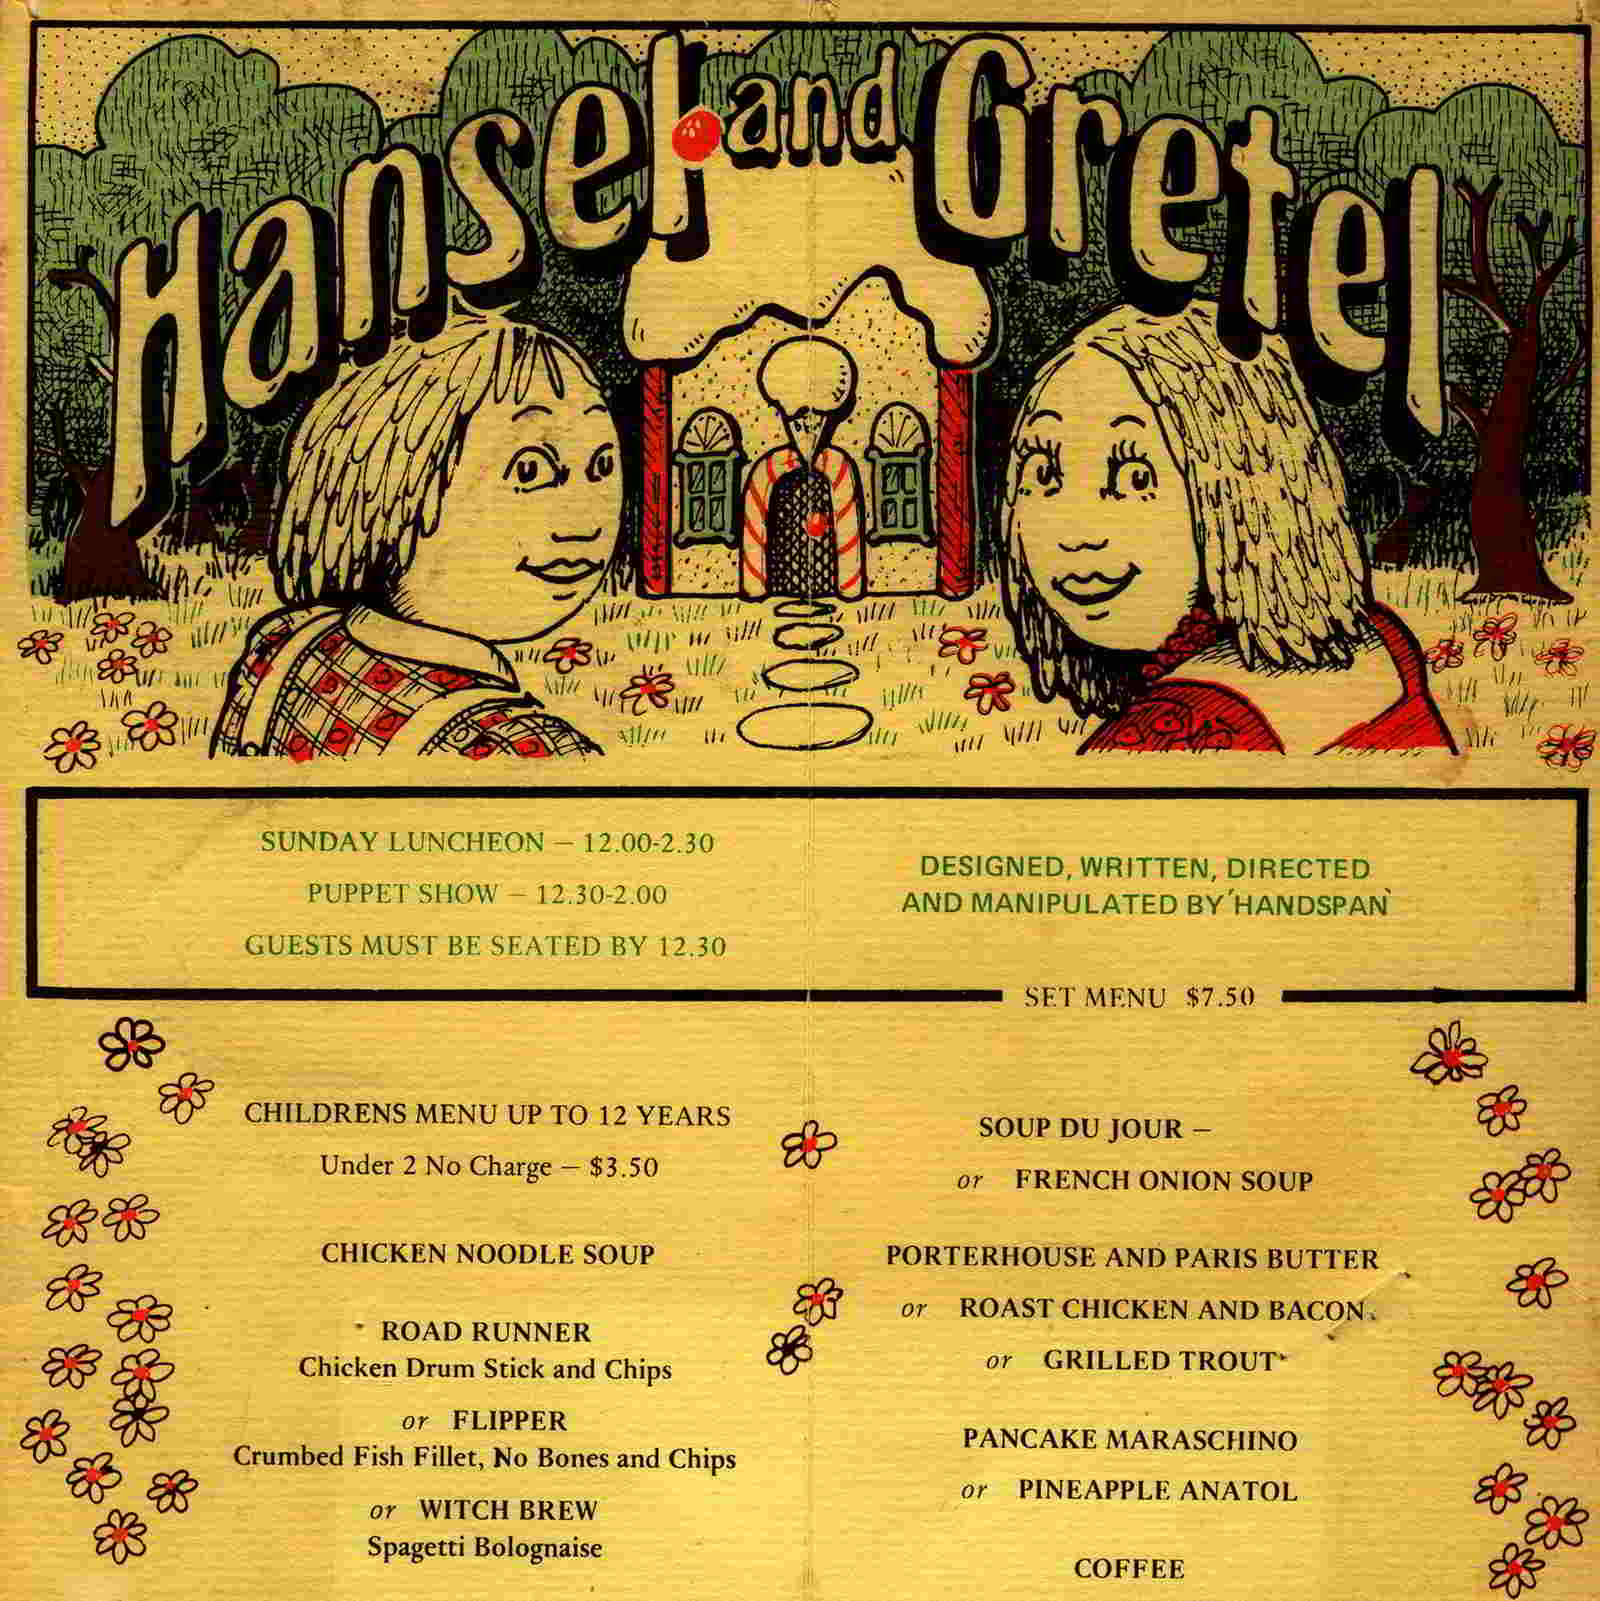 Handspan Theatre Hansel and Gretel at Anatols menu